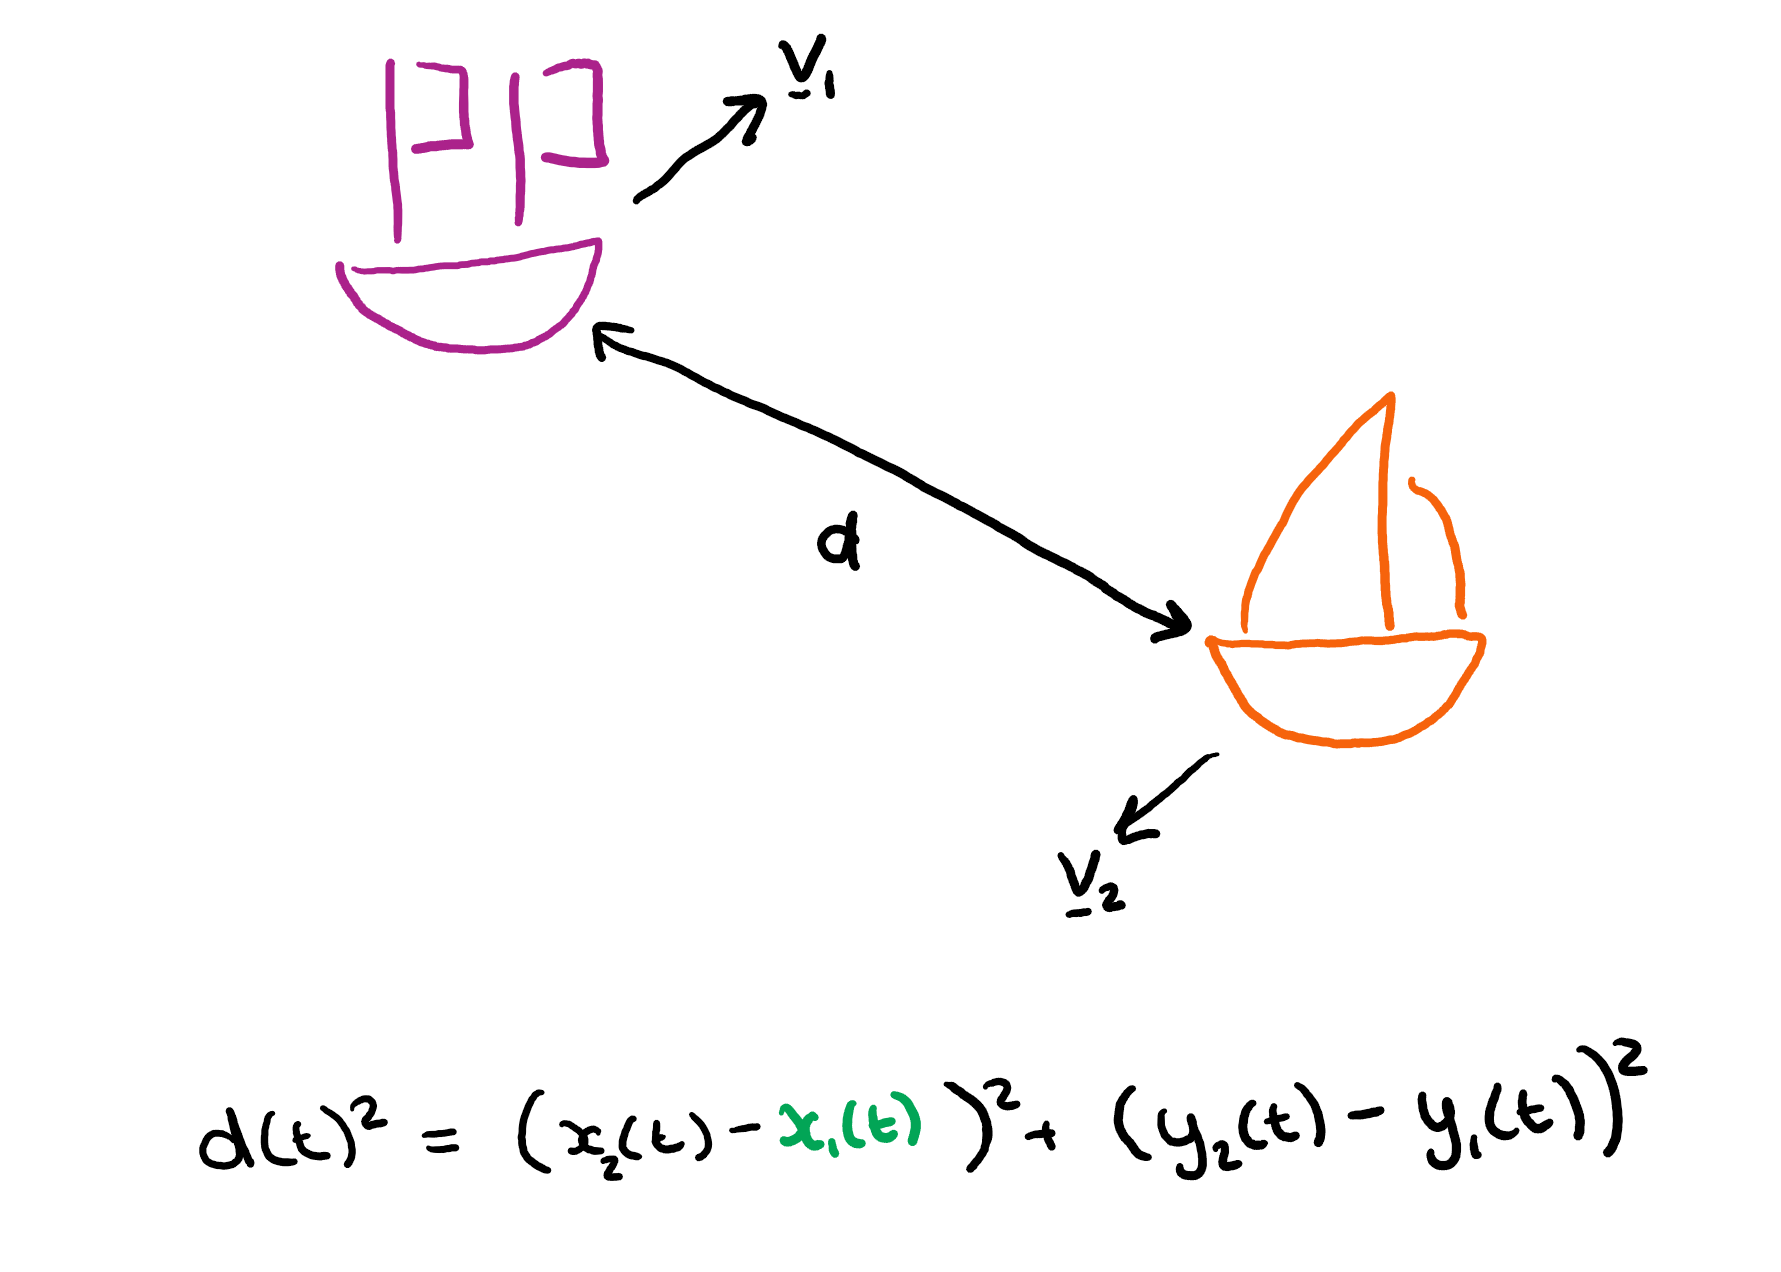 Diagram showing final equation.